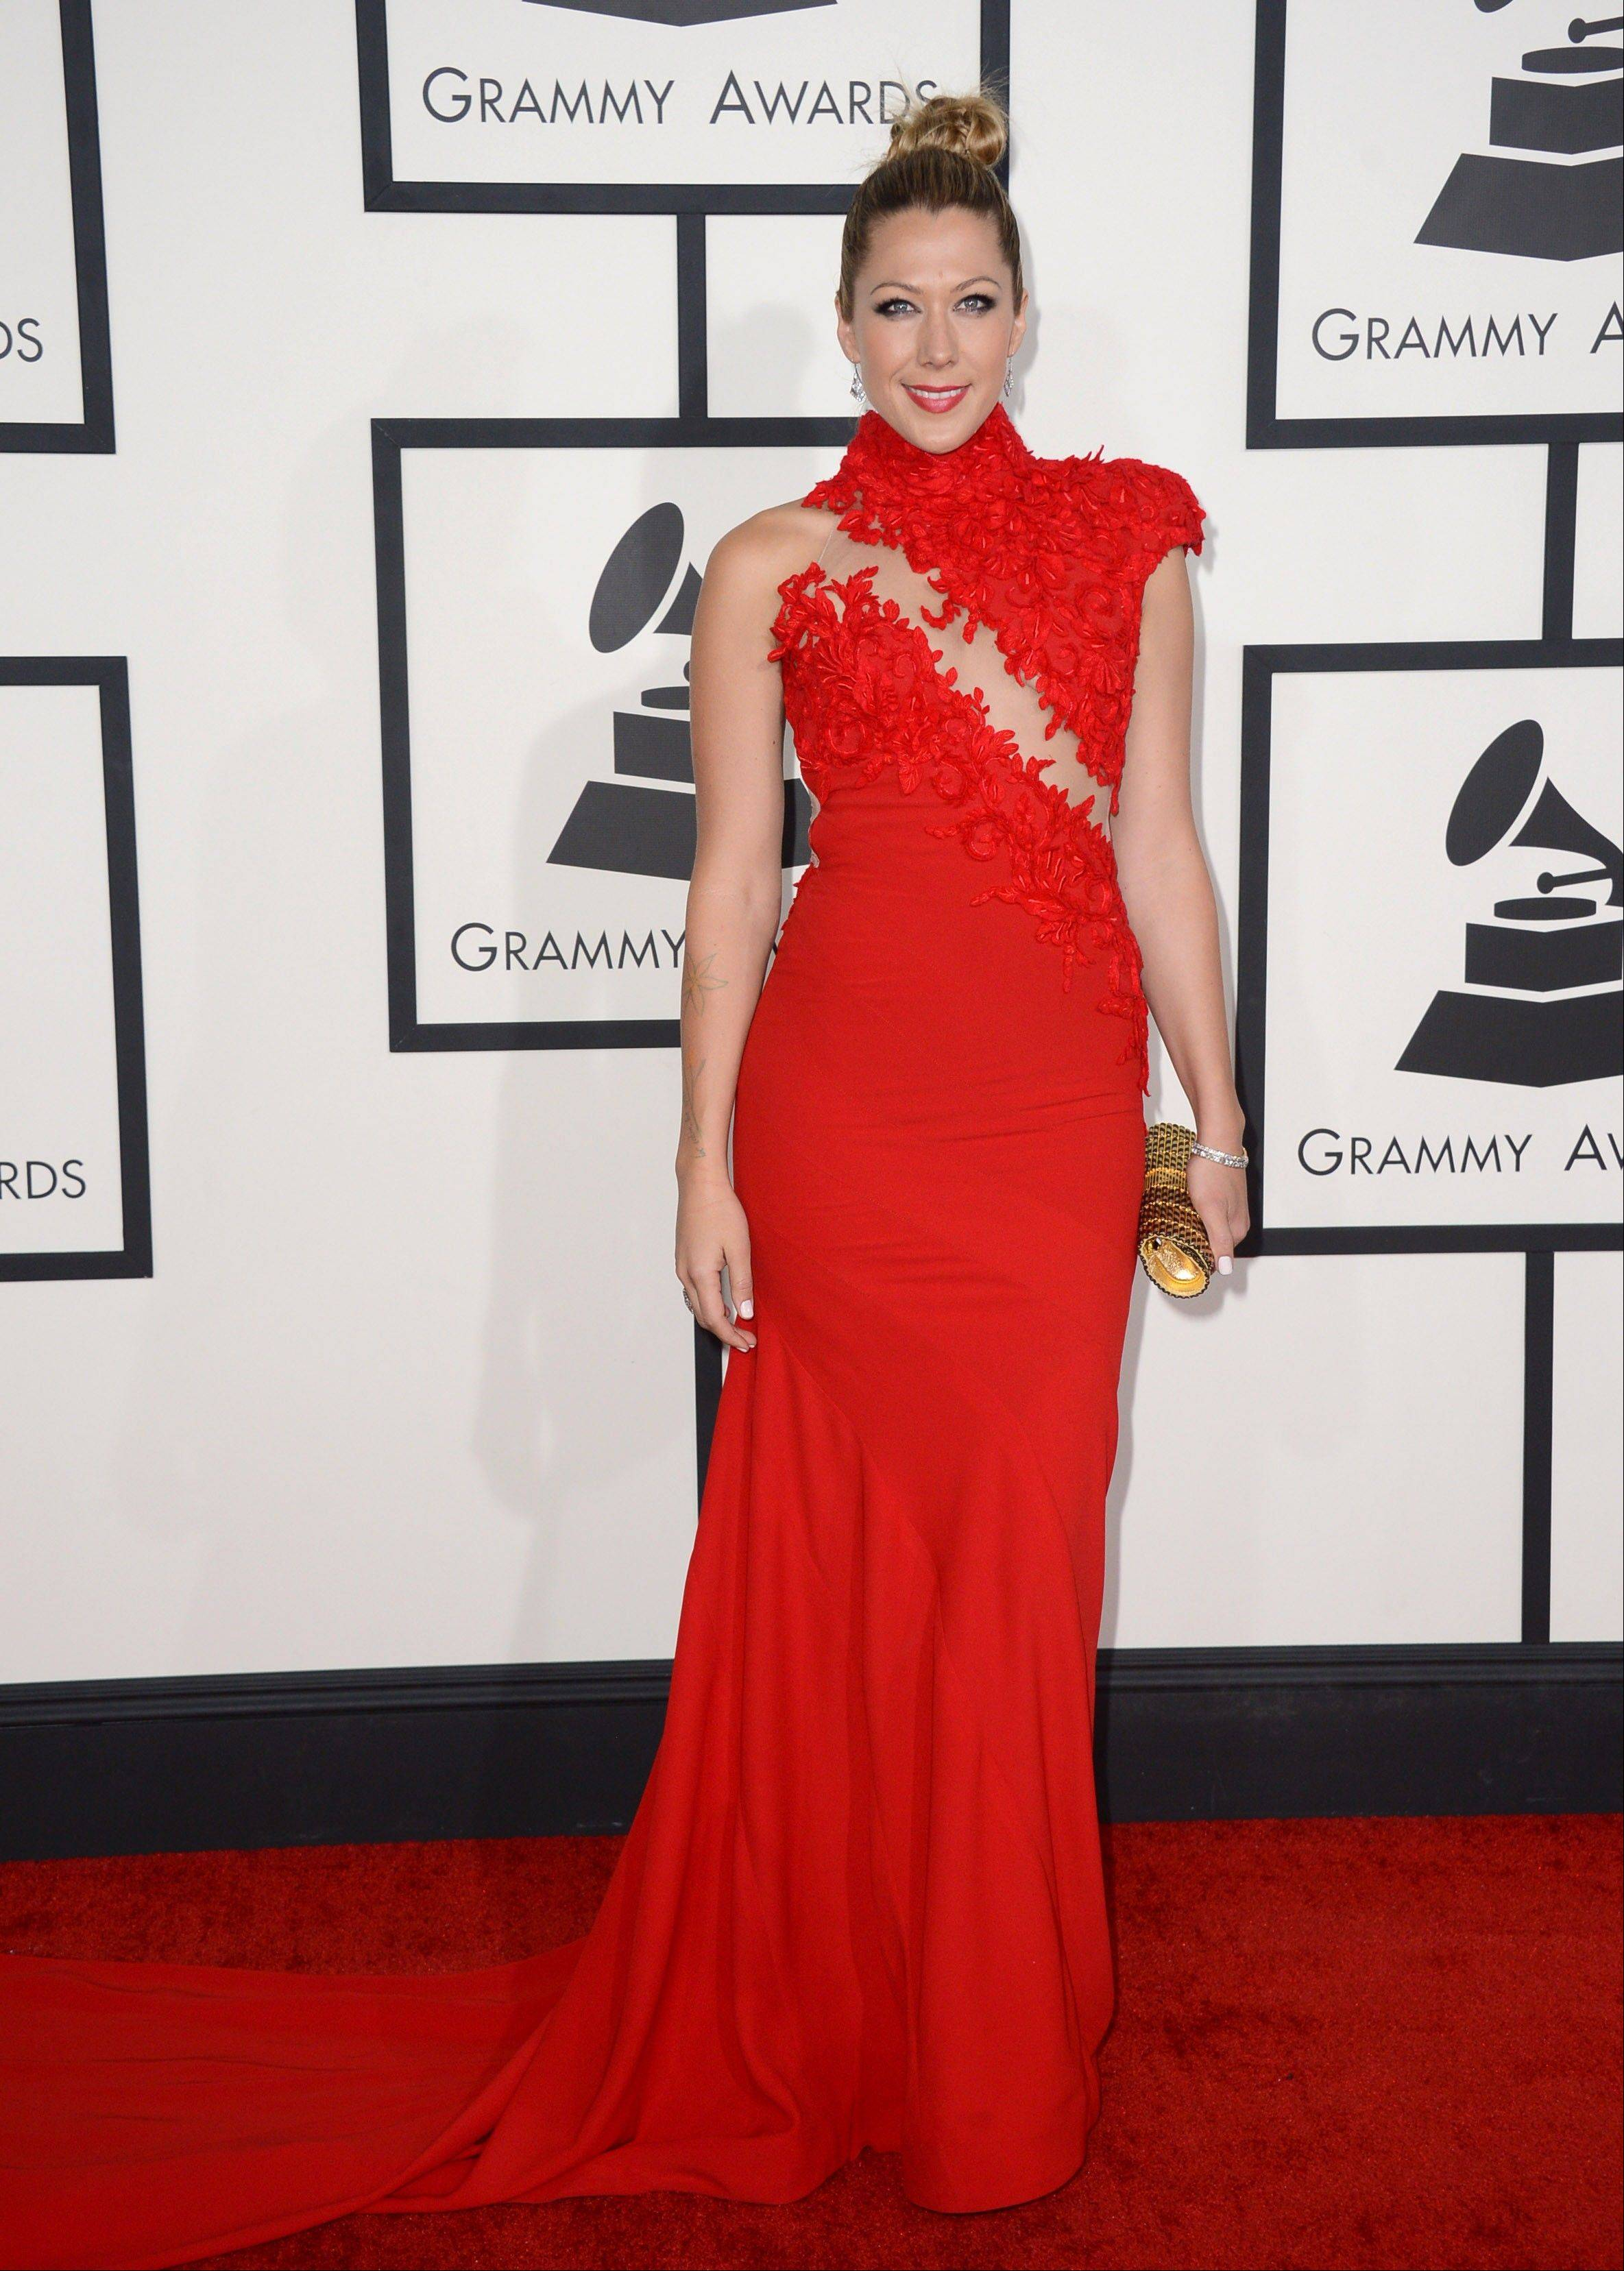 Singer-songwriter Colbie Caillat arrives at the 56th annual Grammy Awards at Staples Center on Sunday in Los Angeles.